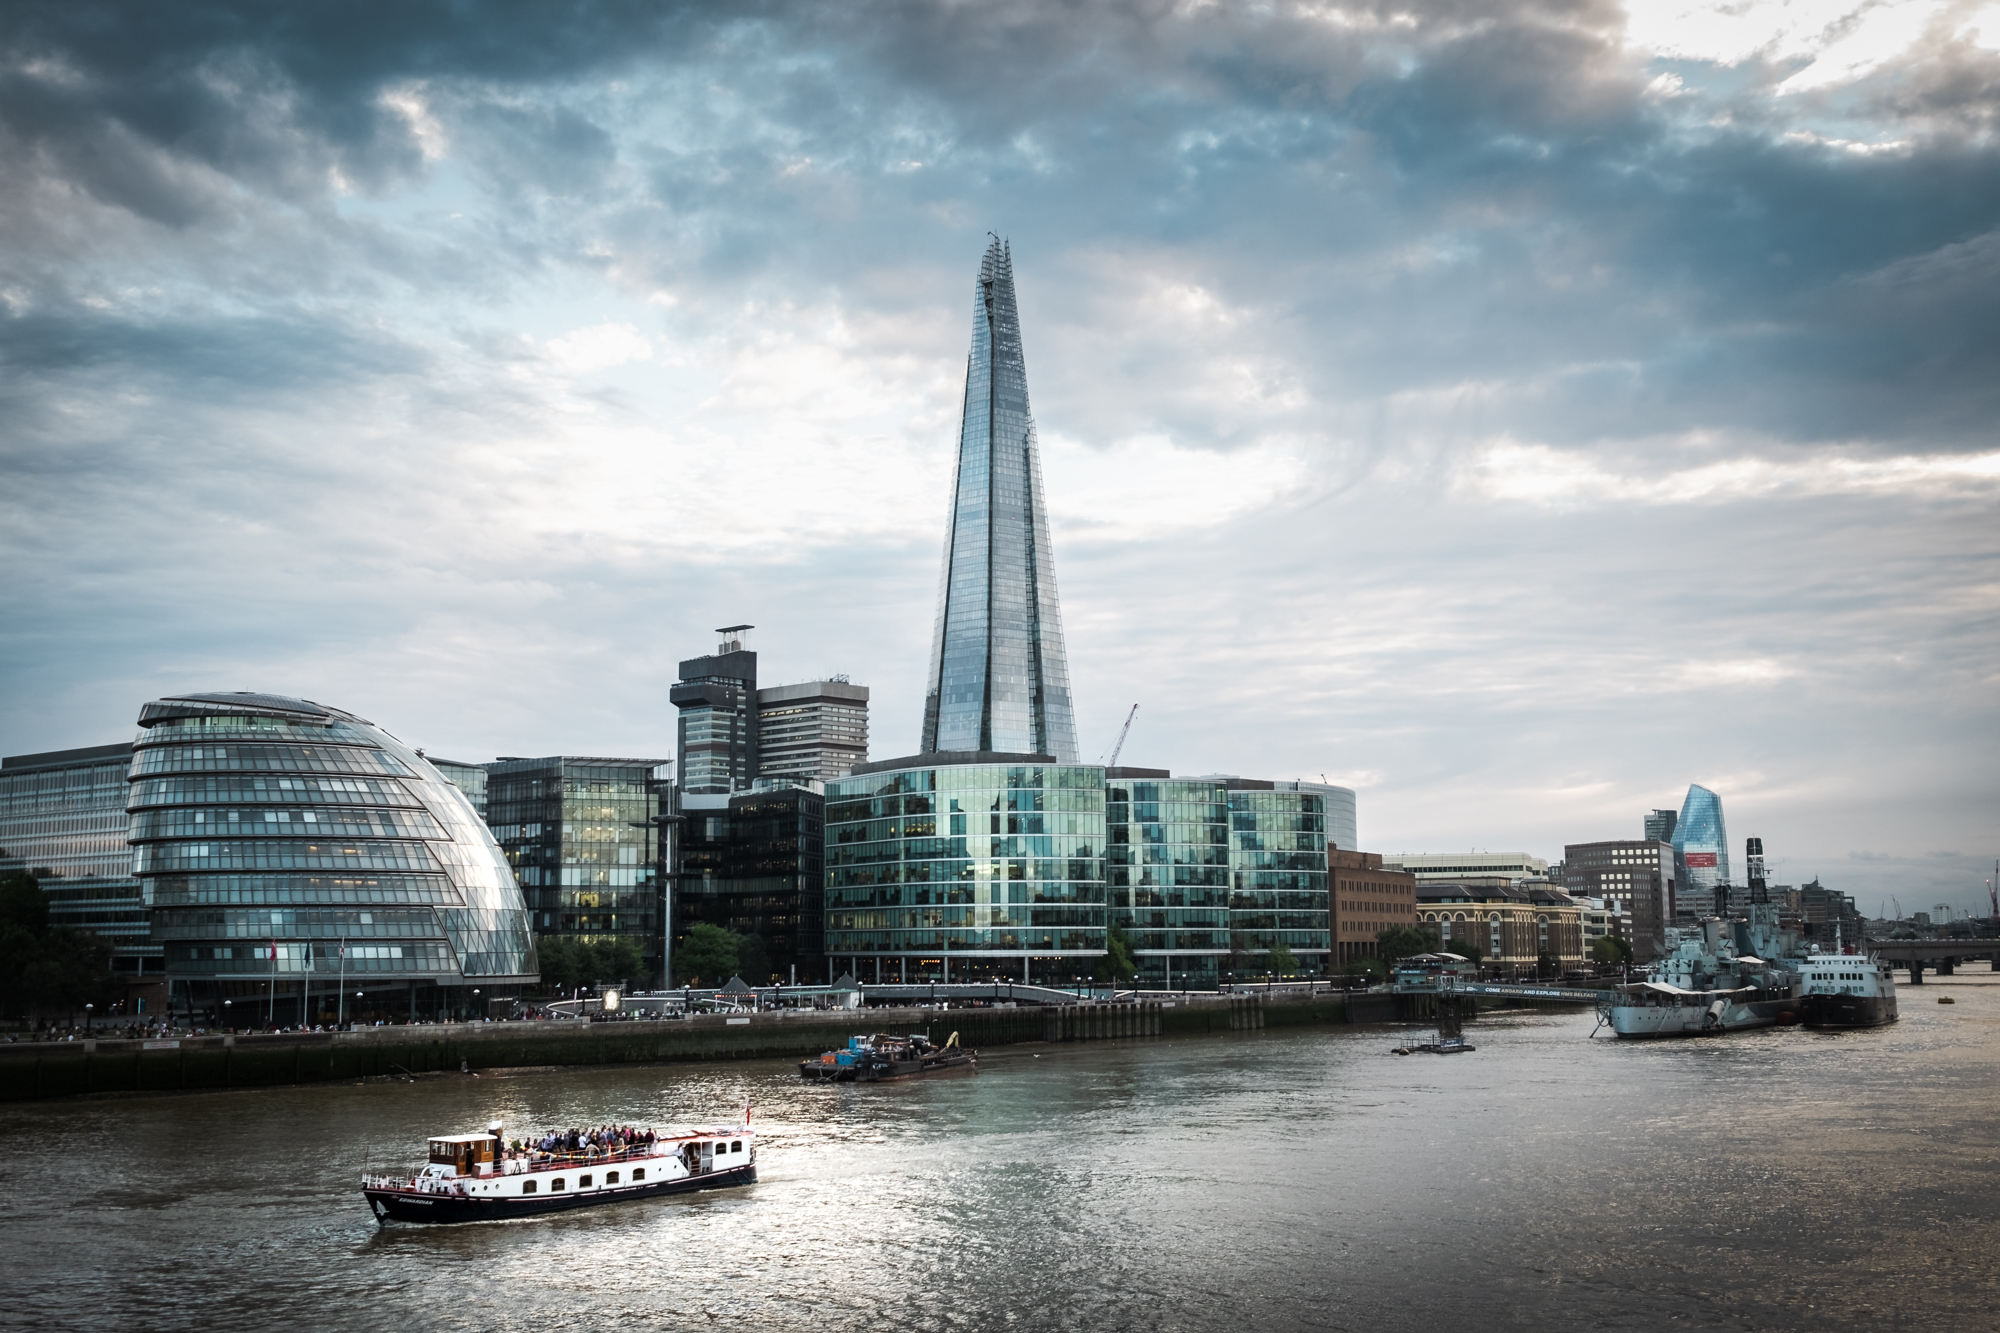 A photo of The Shard from the London Chrome Project taken by Trevor Sherwin